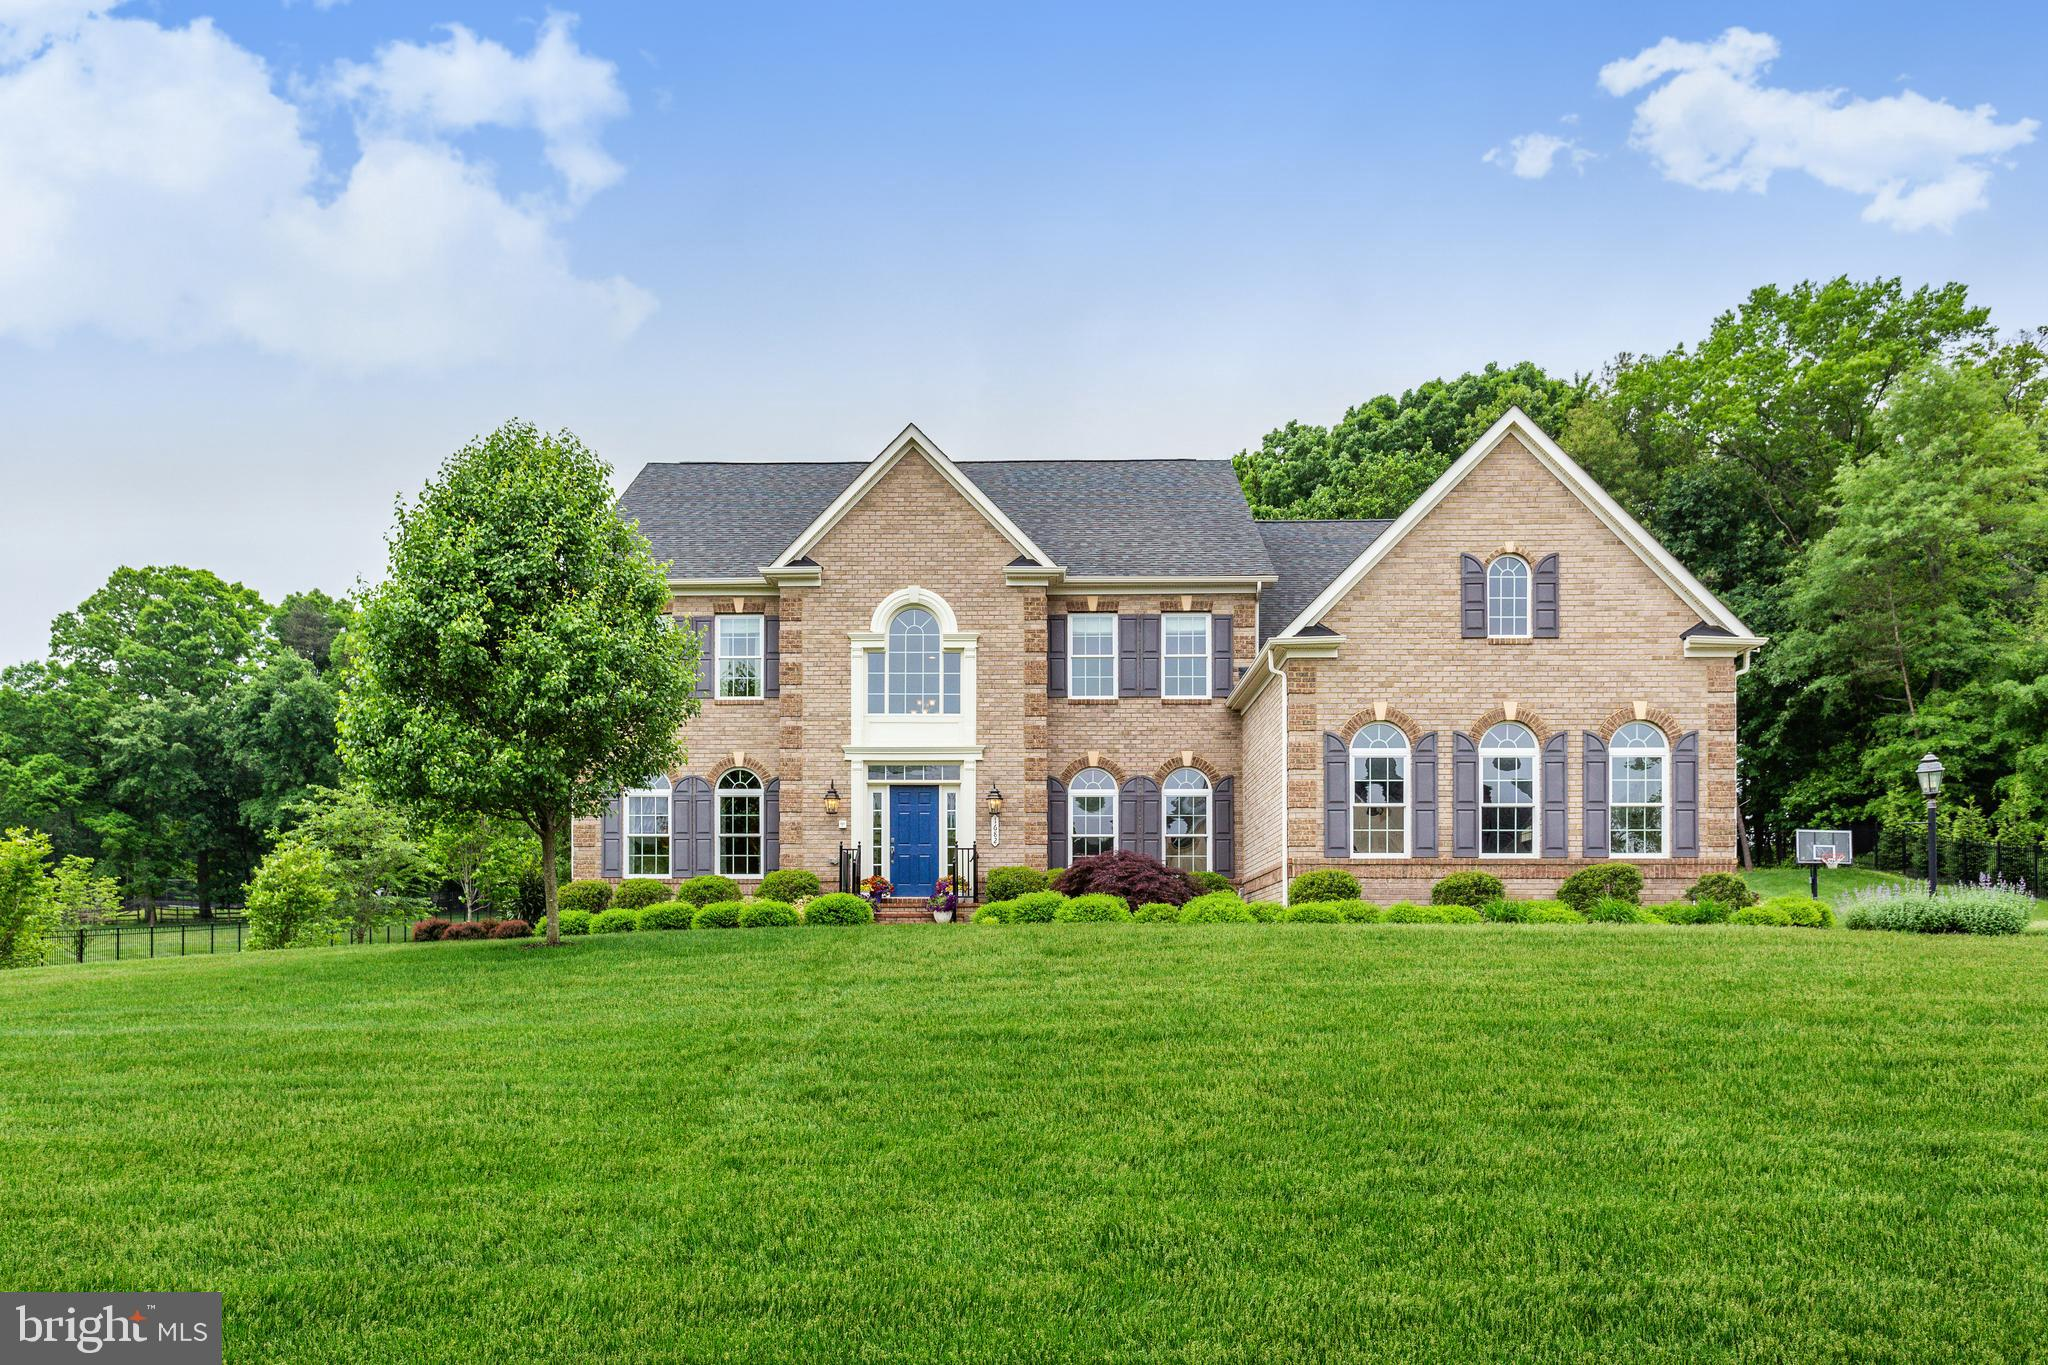 1682 HUNTING CREST WAY, VIENNA, VA 22182